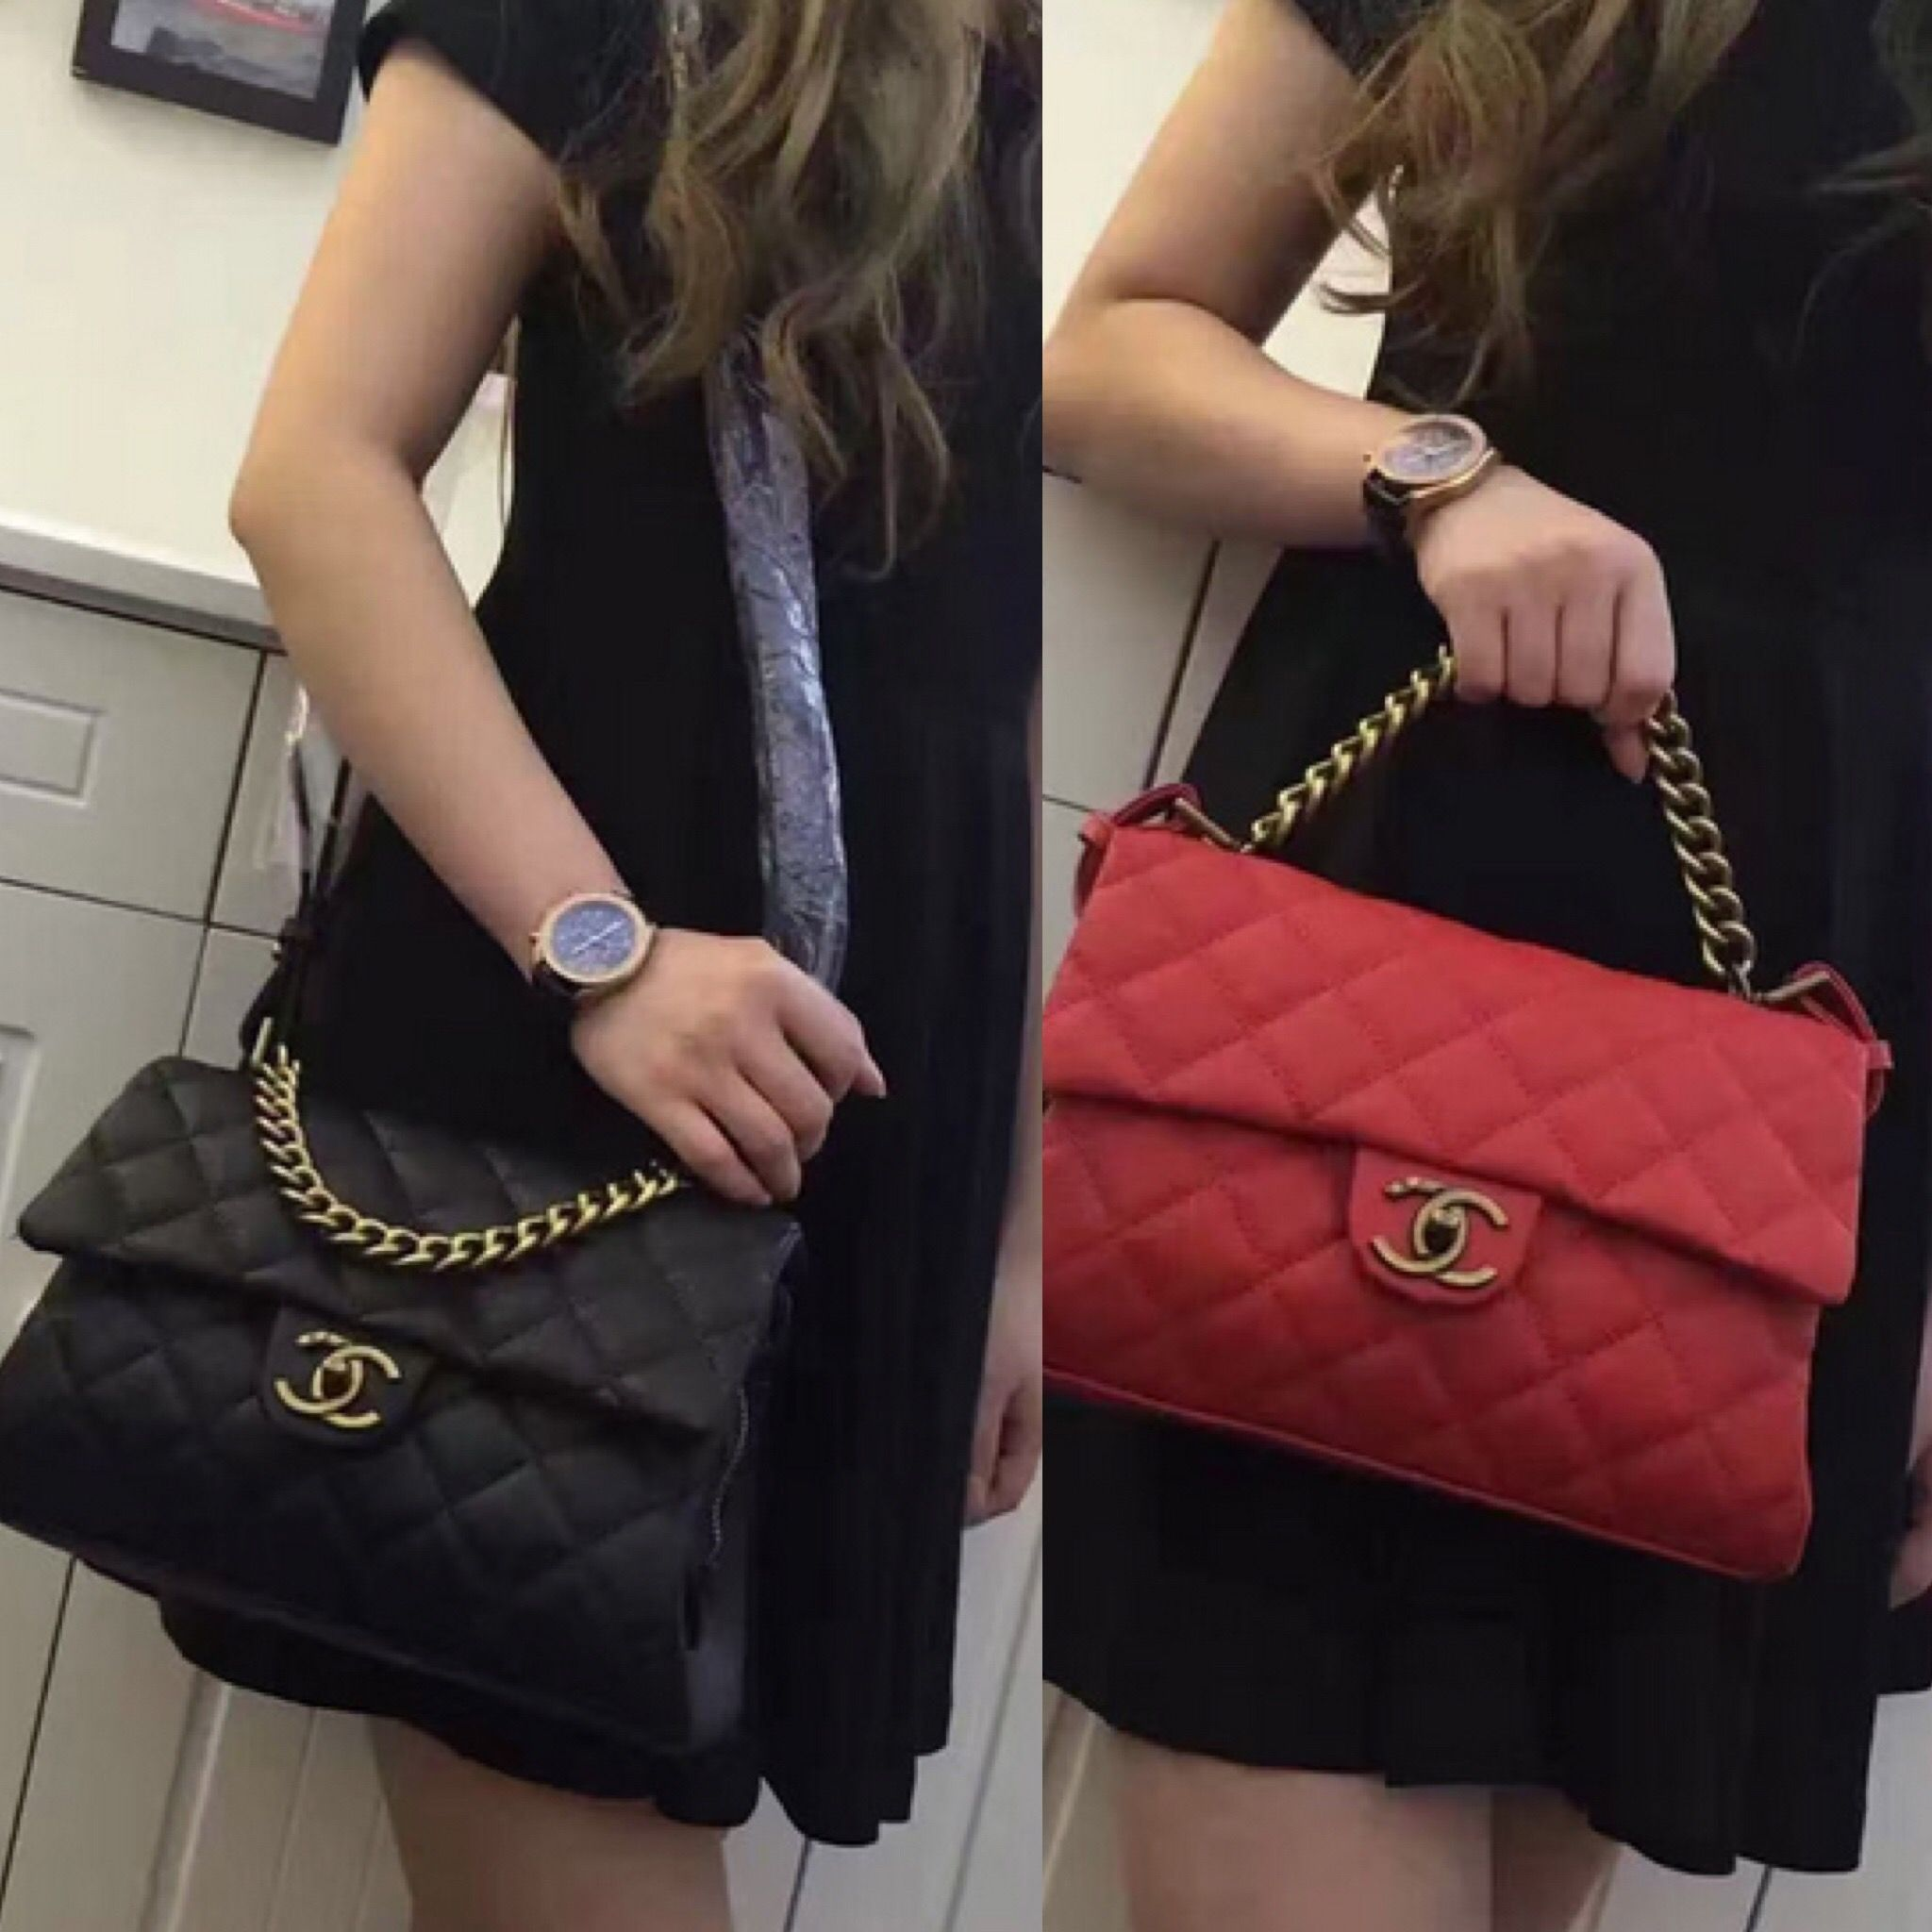 USD  219, Chanel, Imported original material Leather, 26cm x 17cm x 11cm,  super quality. free shipping via DHL, you would get the package in 7 days. d96bcb9cd19